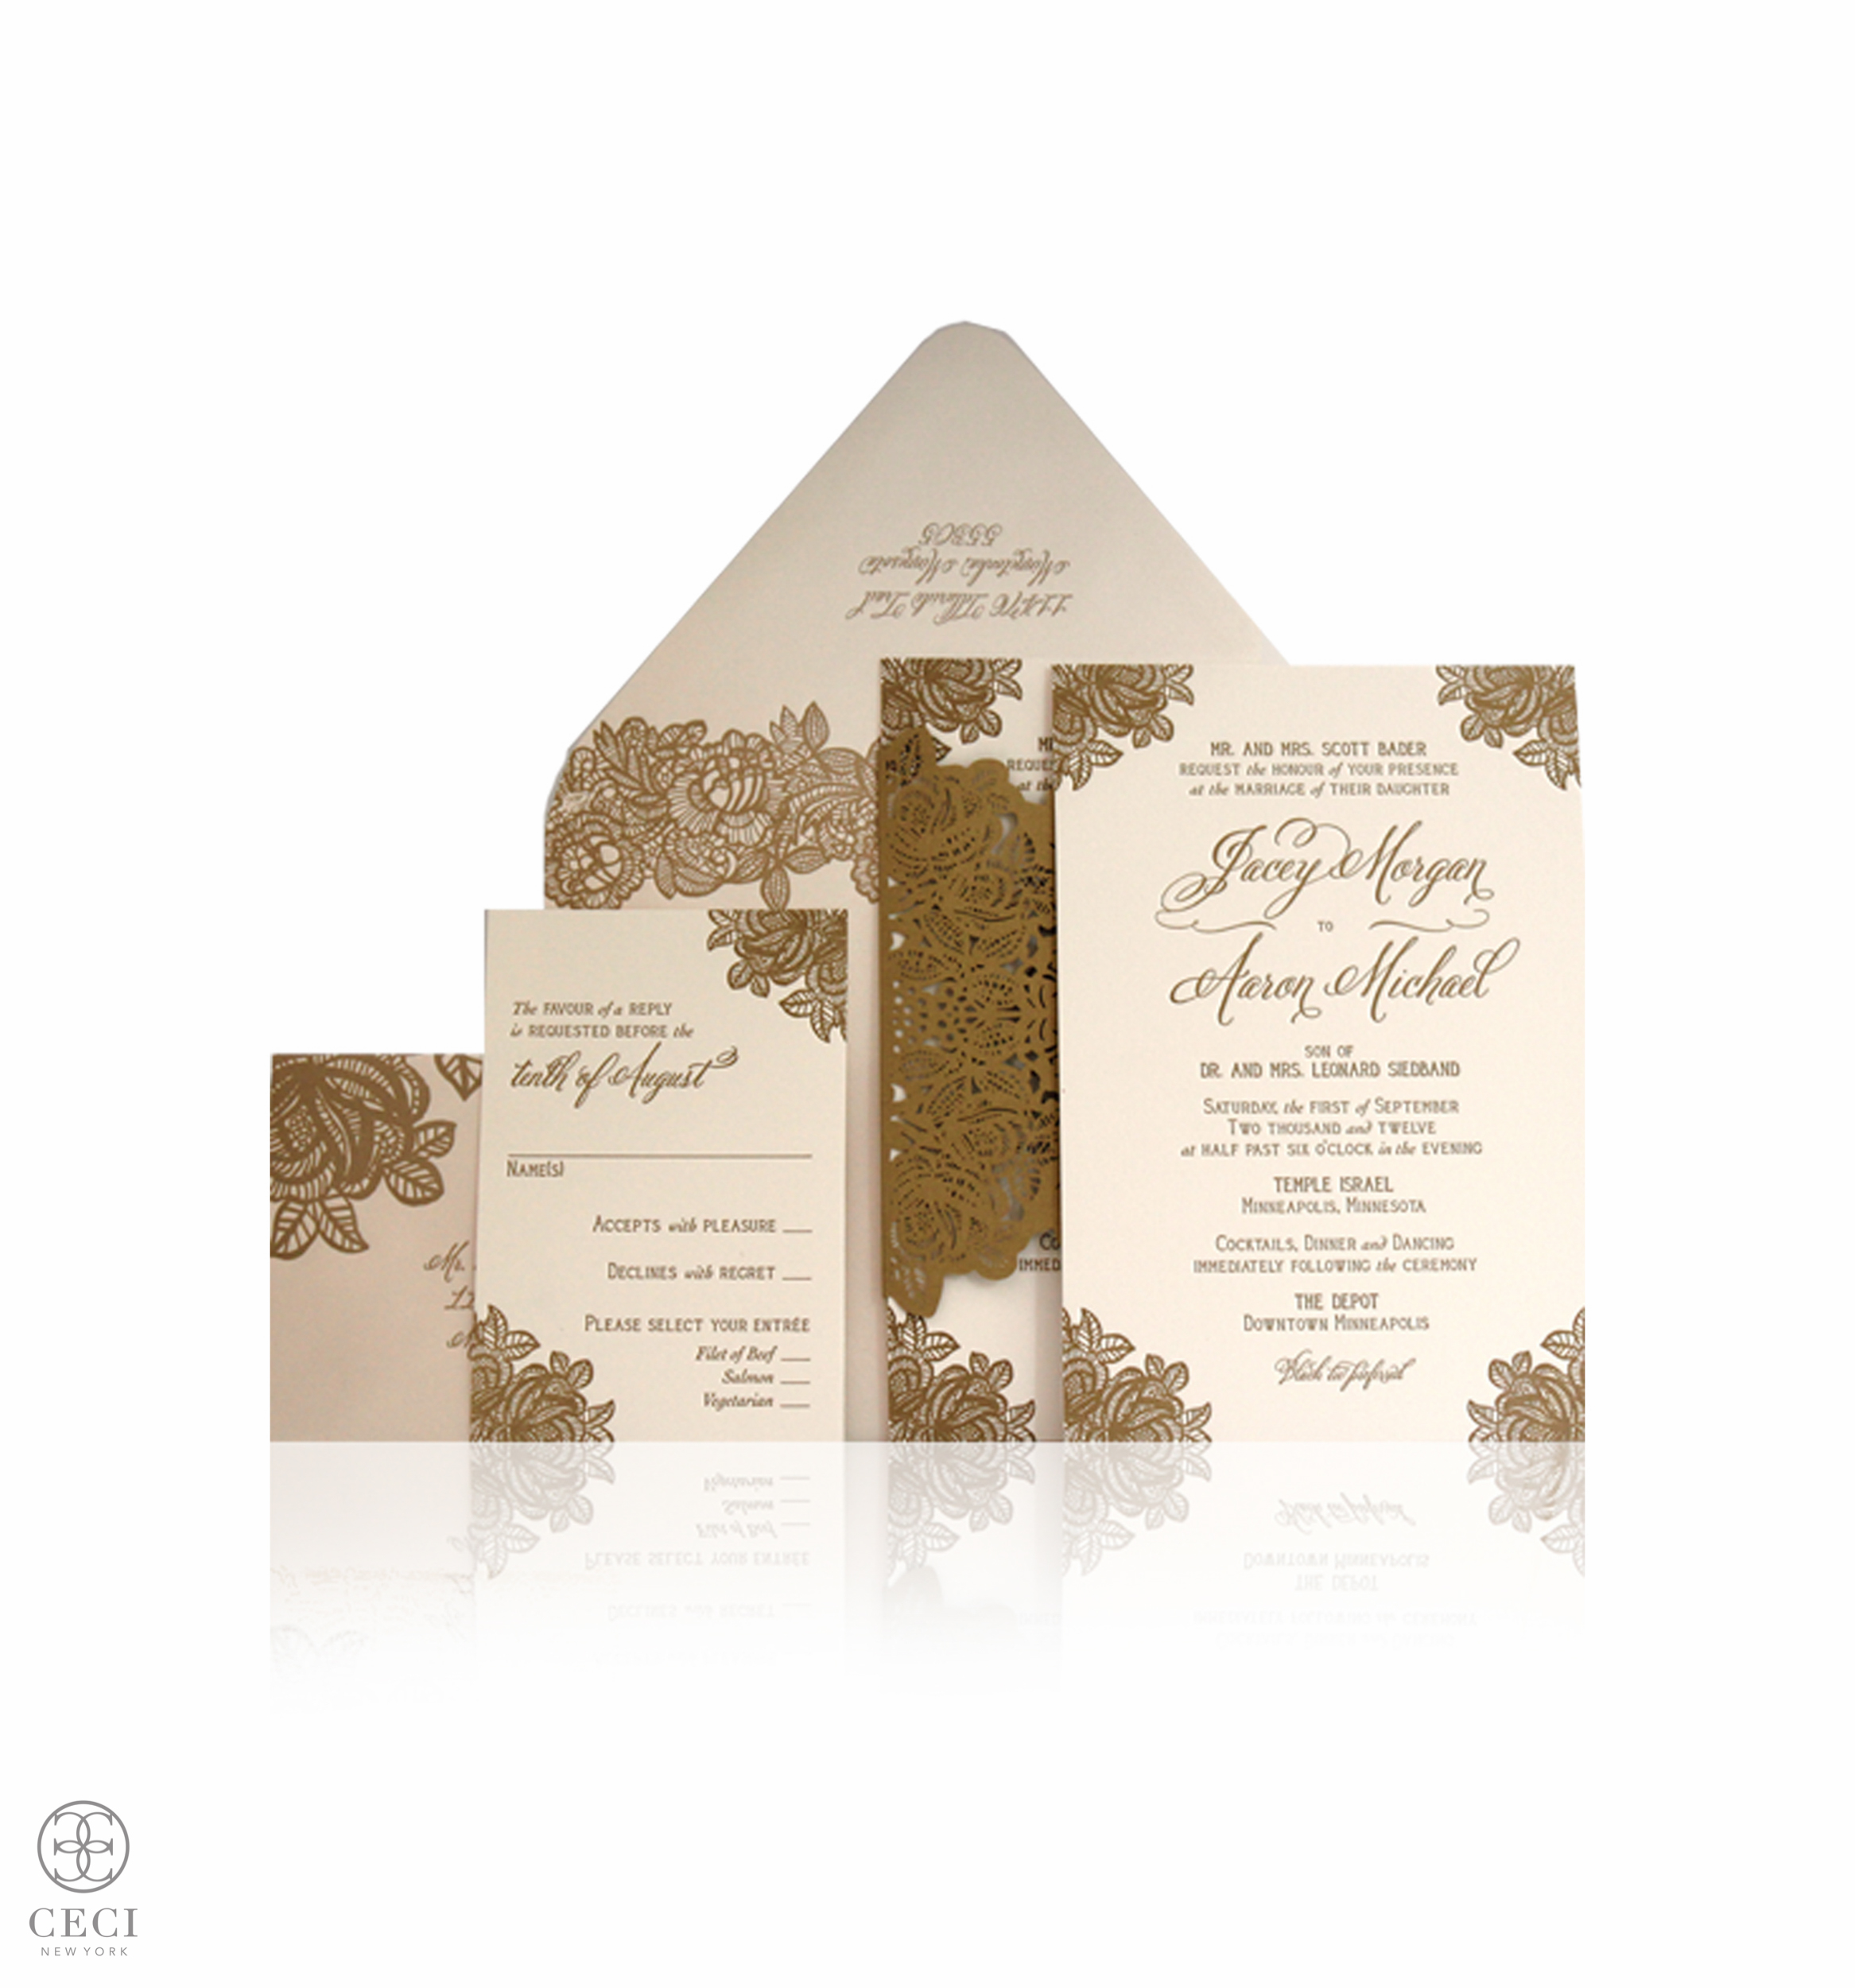 Ceci_New_York_Ceci_Style_Ceci_Johnson_Luxury_Lifestyle_Floral_Lace_Wedding_Letterpress_Inspiration_Design_Custom_Couture_Personalized_Invitations_-11.jpg